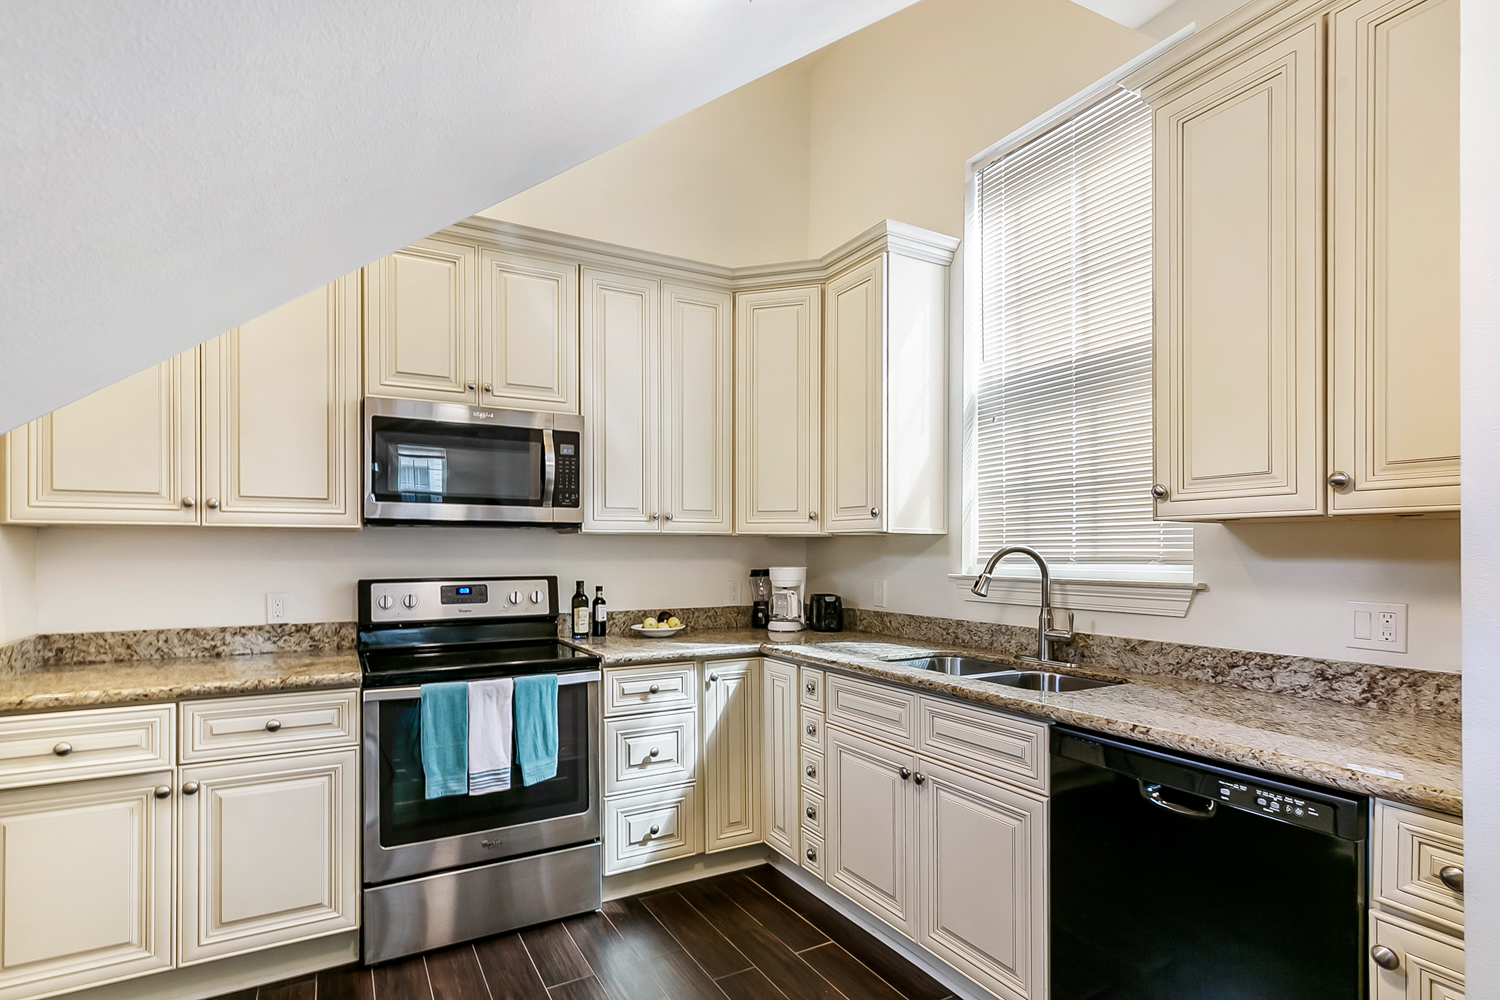 Garden District, Apartment, 1 beds, 1.0 baths, $2800 per month New Orleans Rental - devie image_6